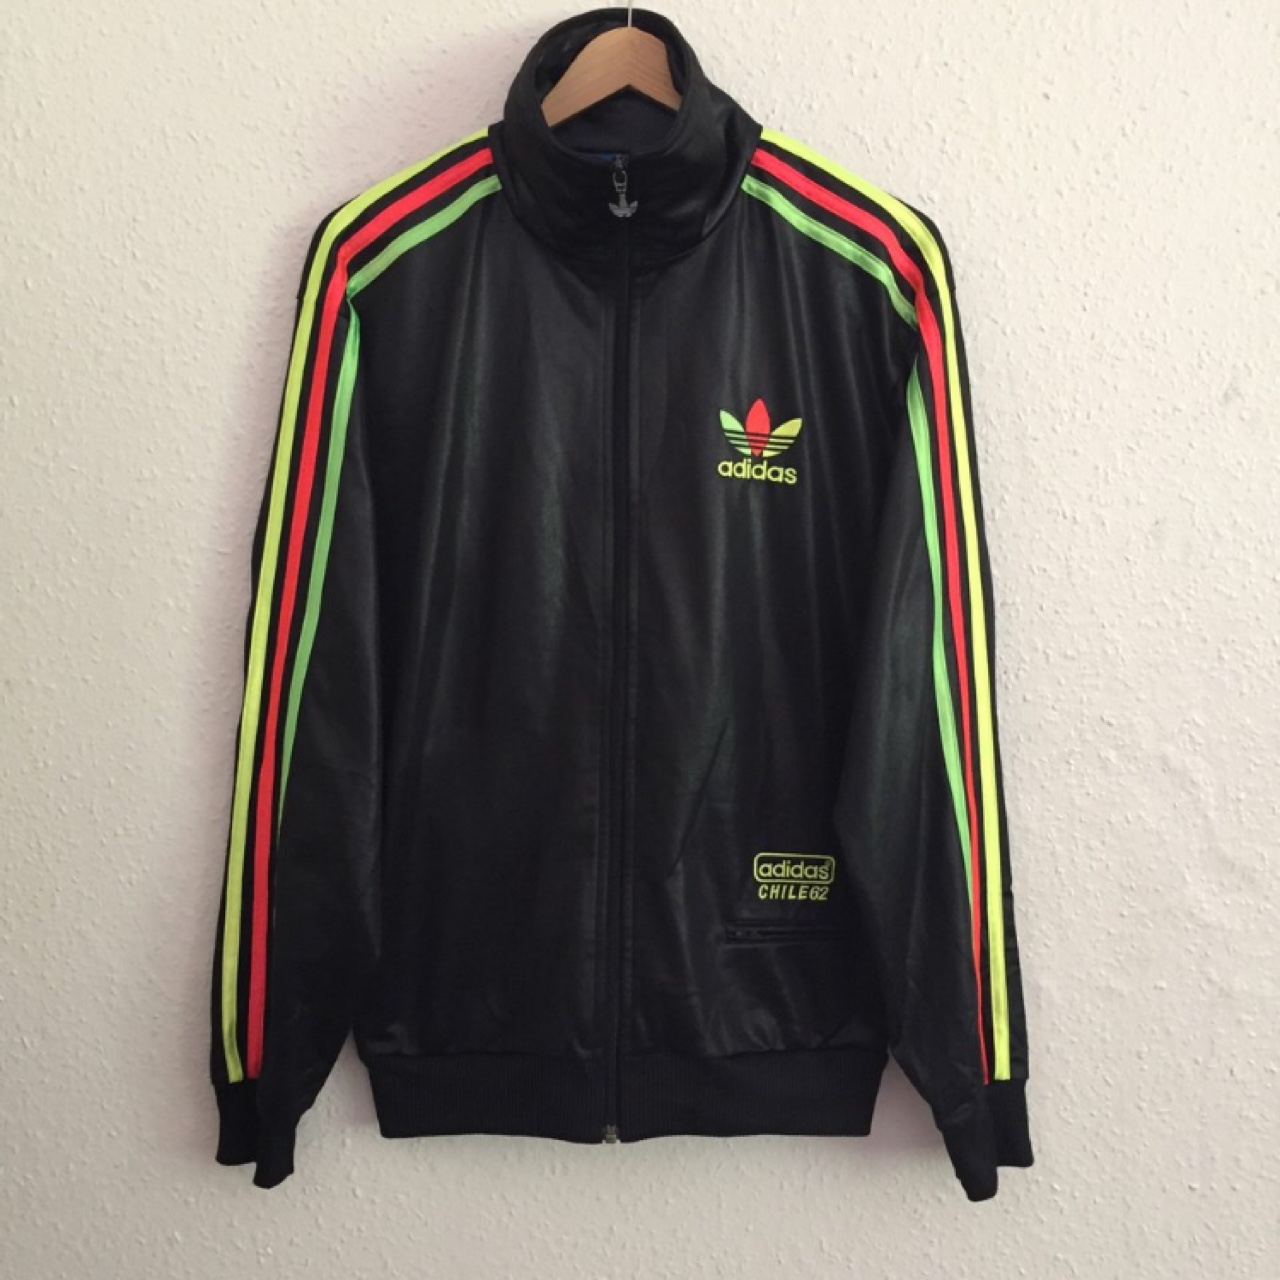 adidas chile 62 tracksuit top